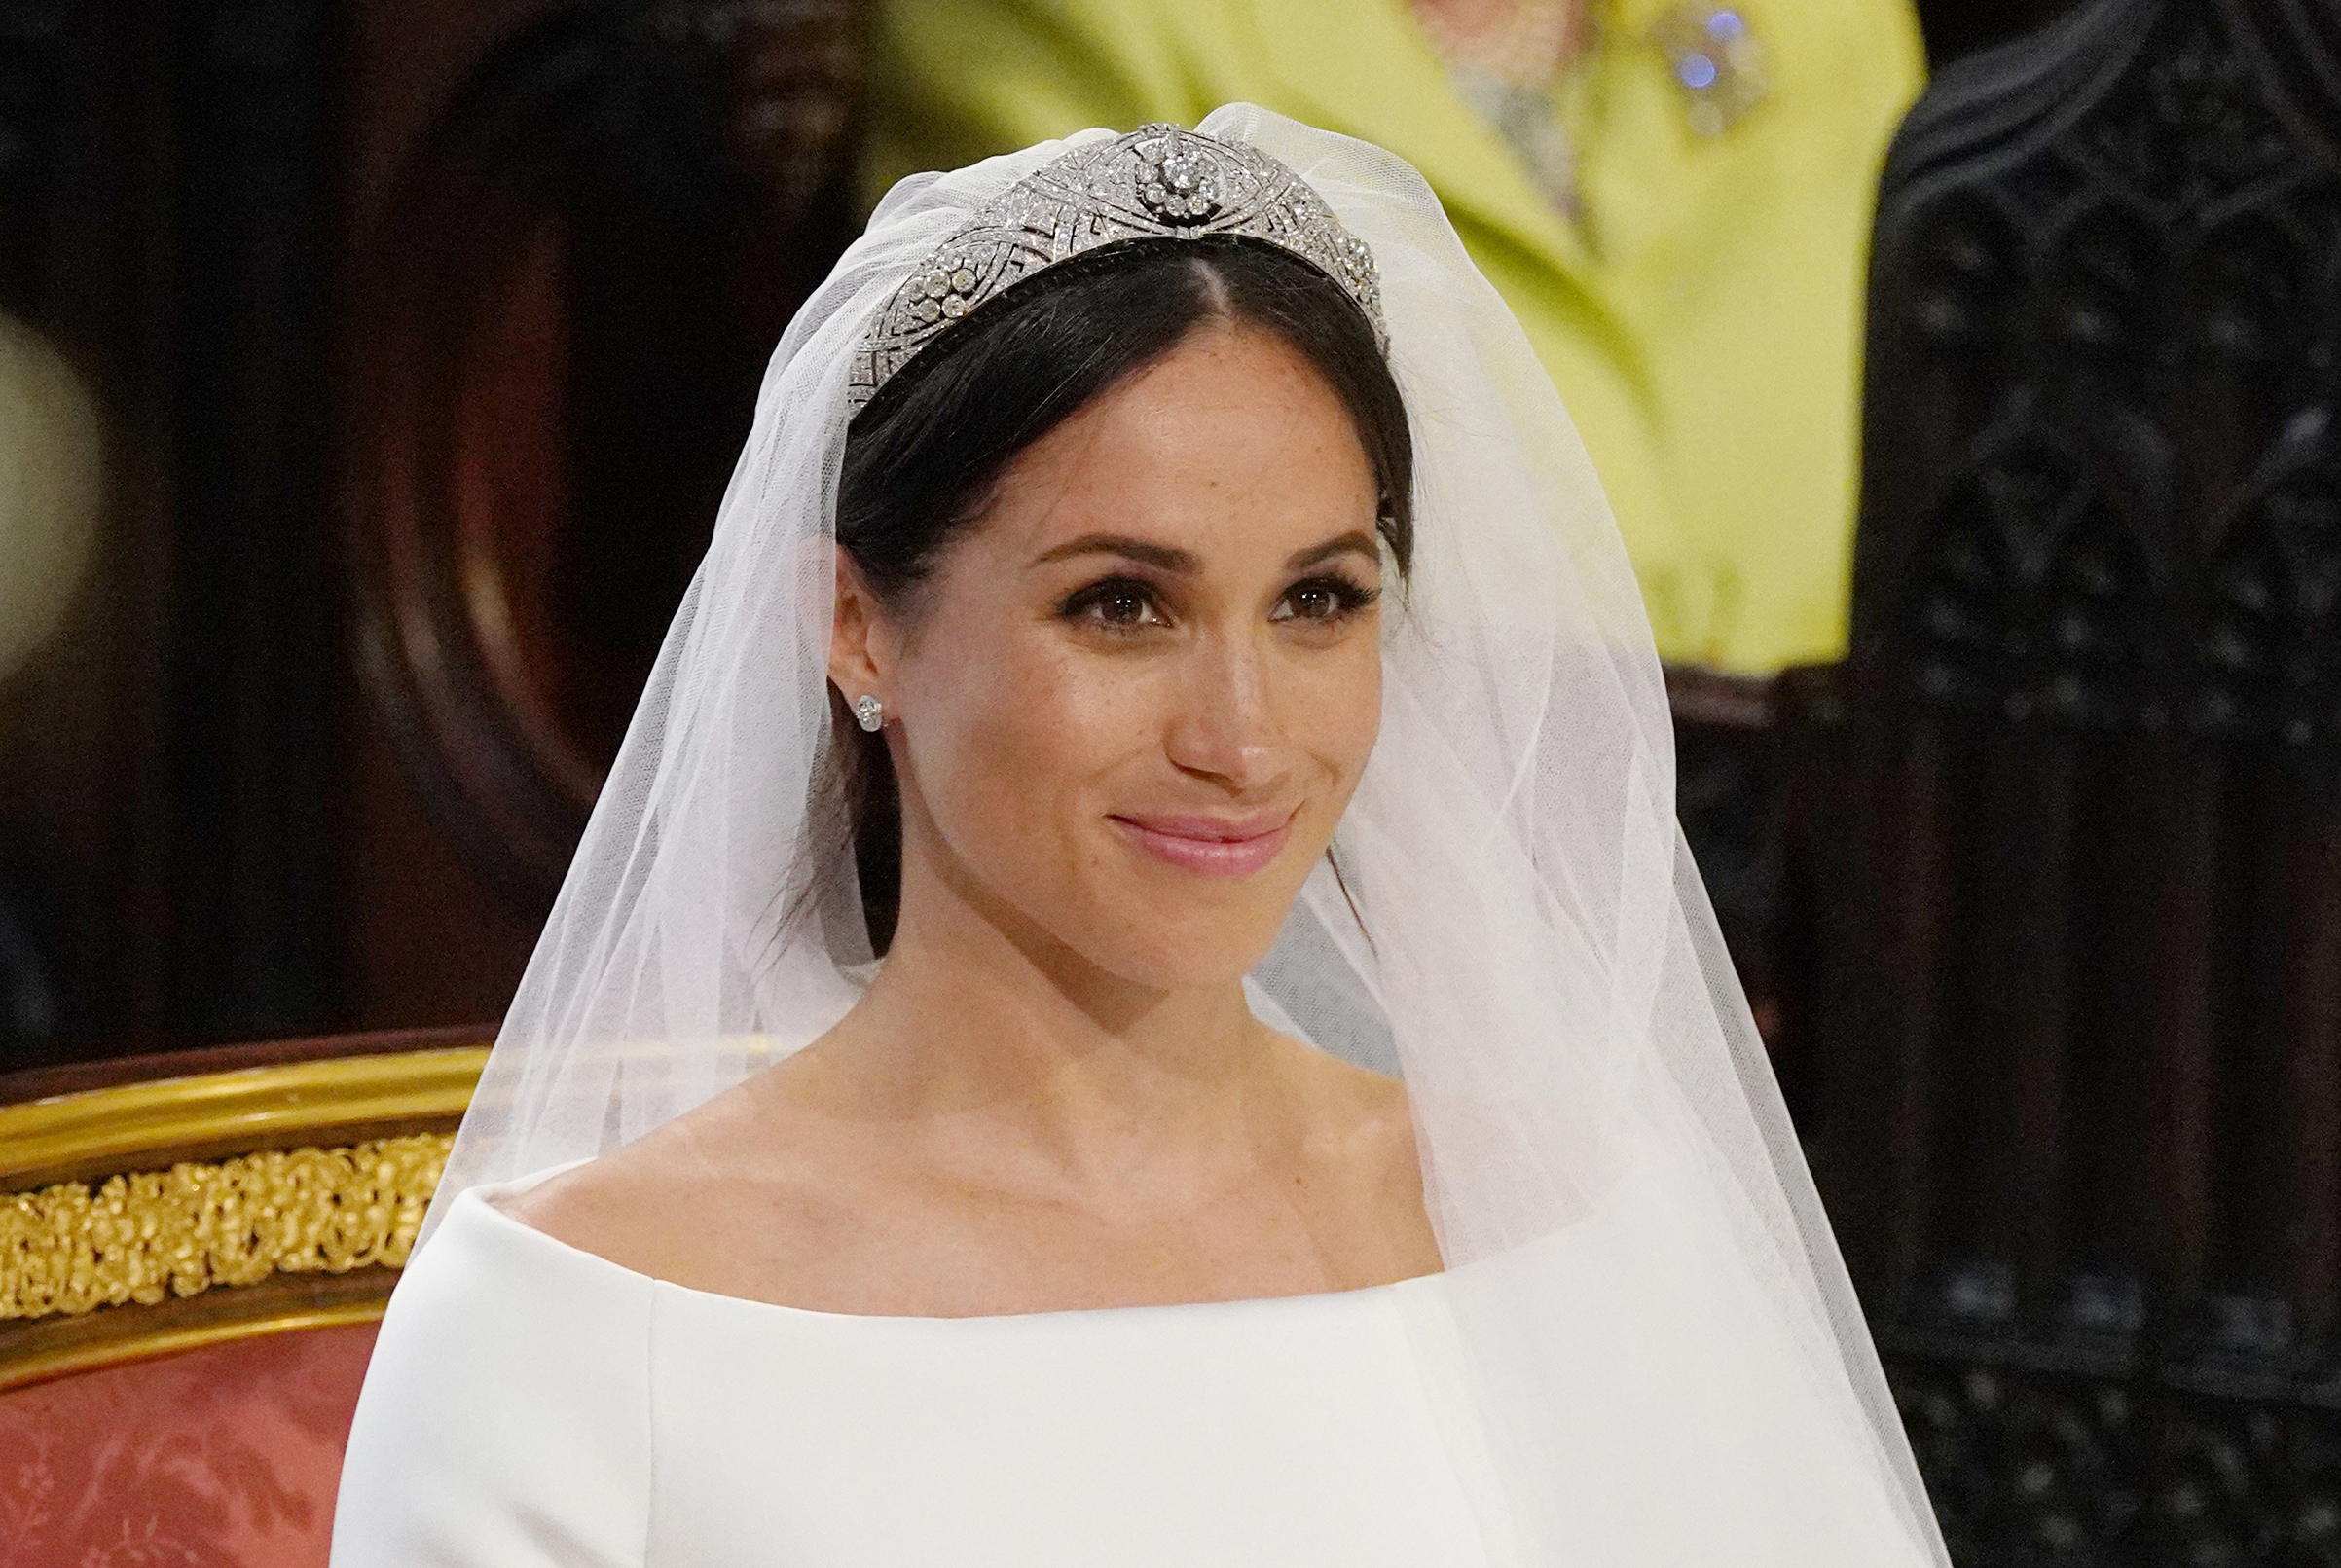 royal-wedding-2018-meghan-markle-jewlery-makeup-2.jpeg